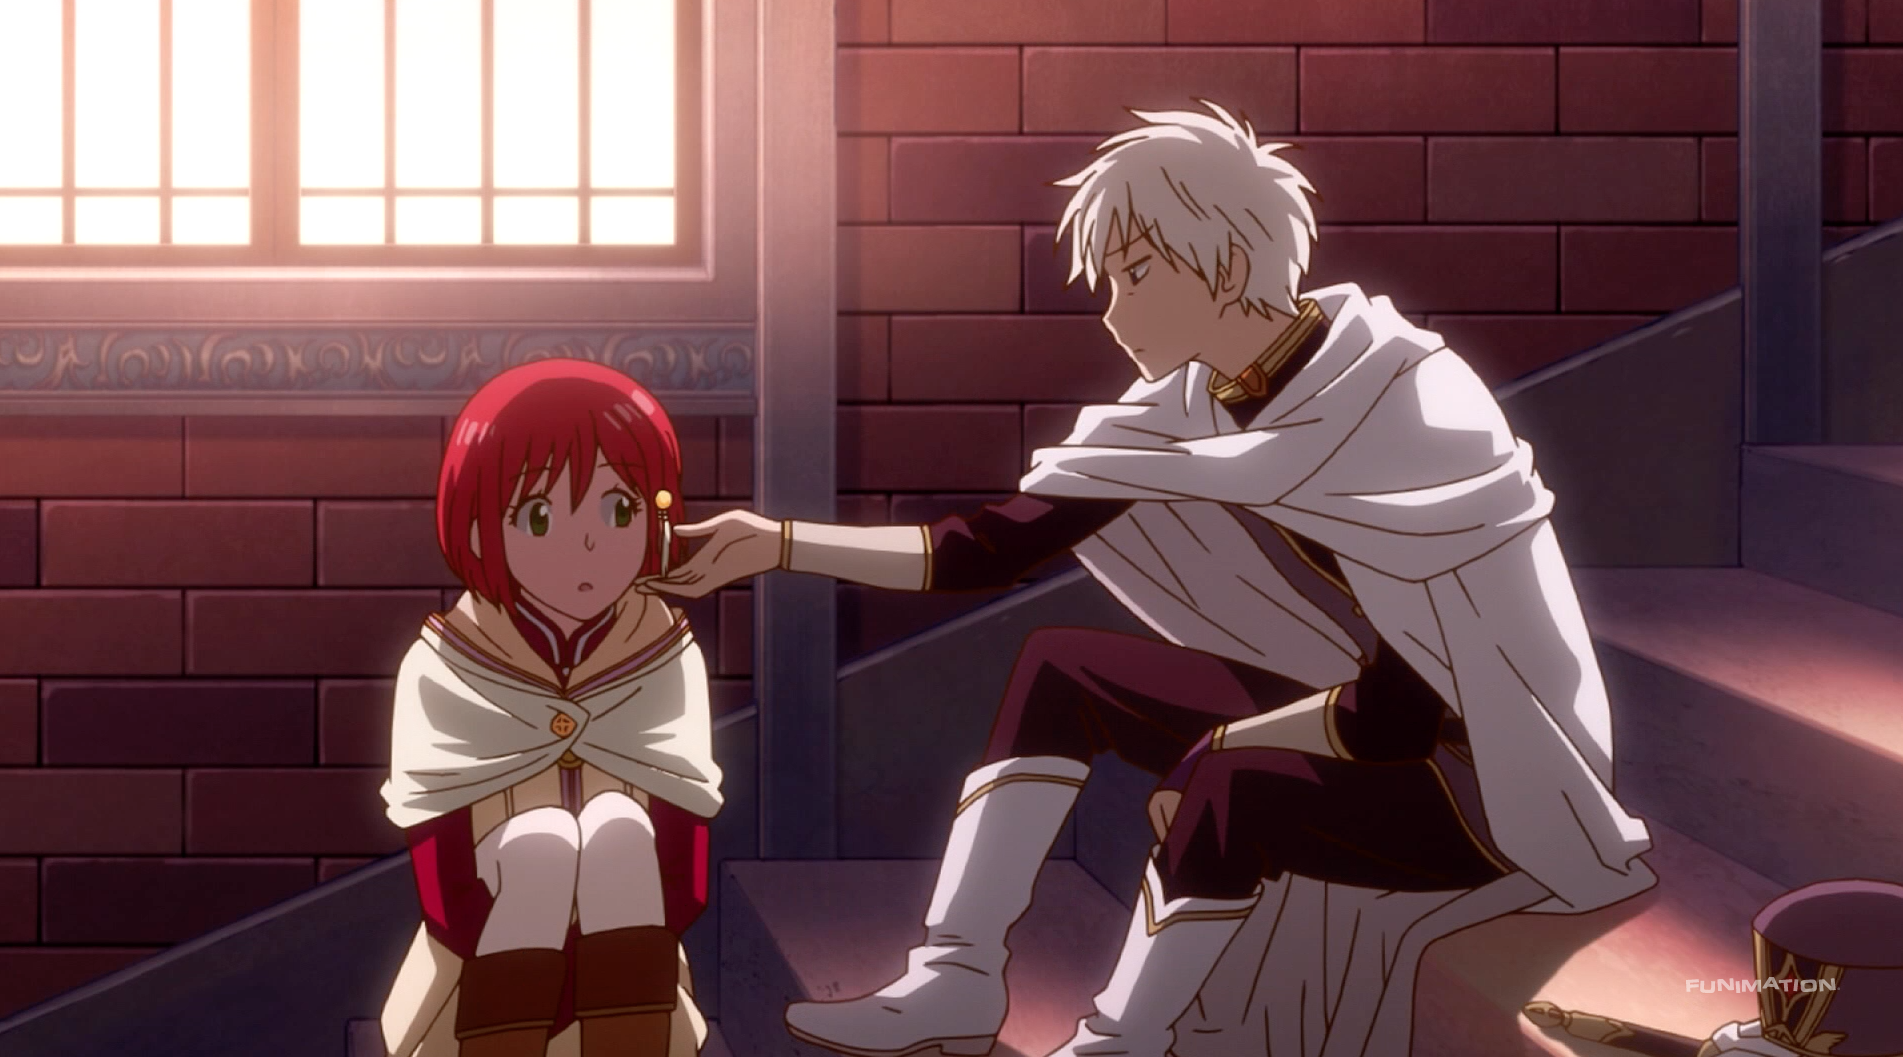 Pin By Queen Tender On Akagami No Shirayuki Hime Snow White With The Red Hair Red Hair Snow White